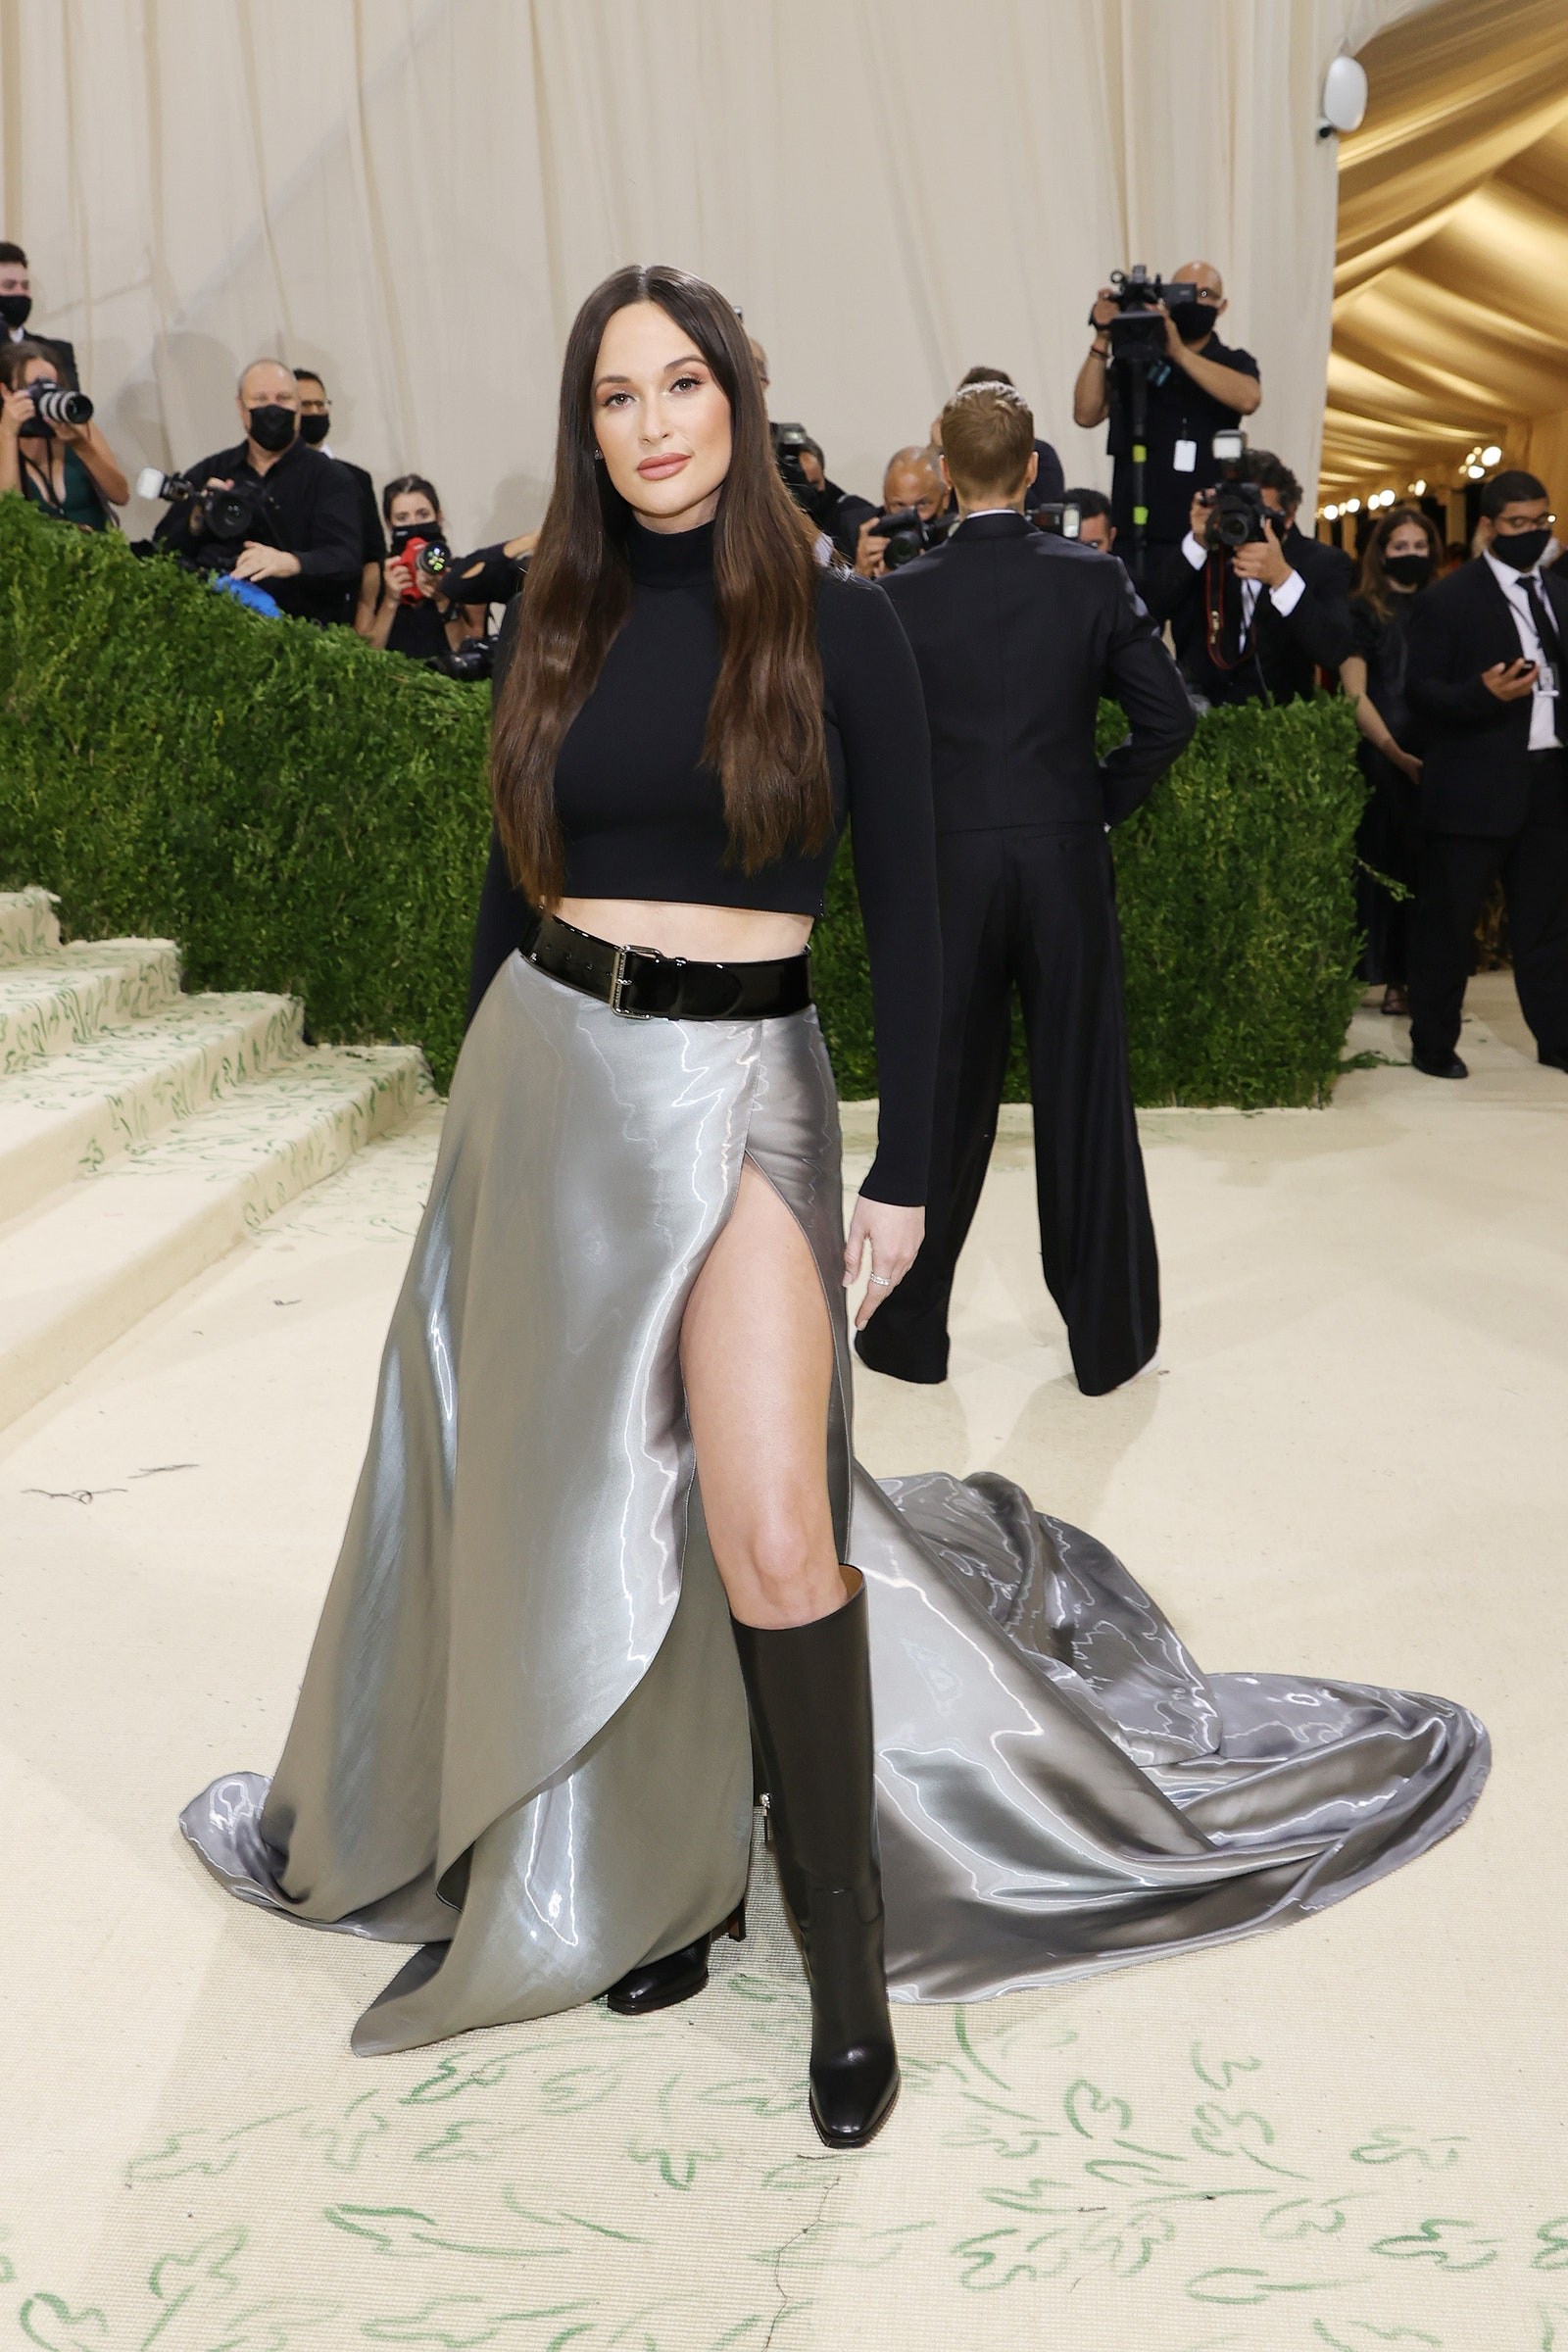 NEW YORK NEW YORK SEPTEMBER 13 Kacey Musgraves attends The 2021 Met Gala Celebrating In America A Lexicon Of Fashion at...